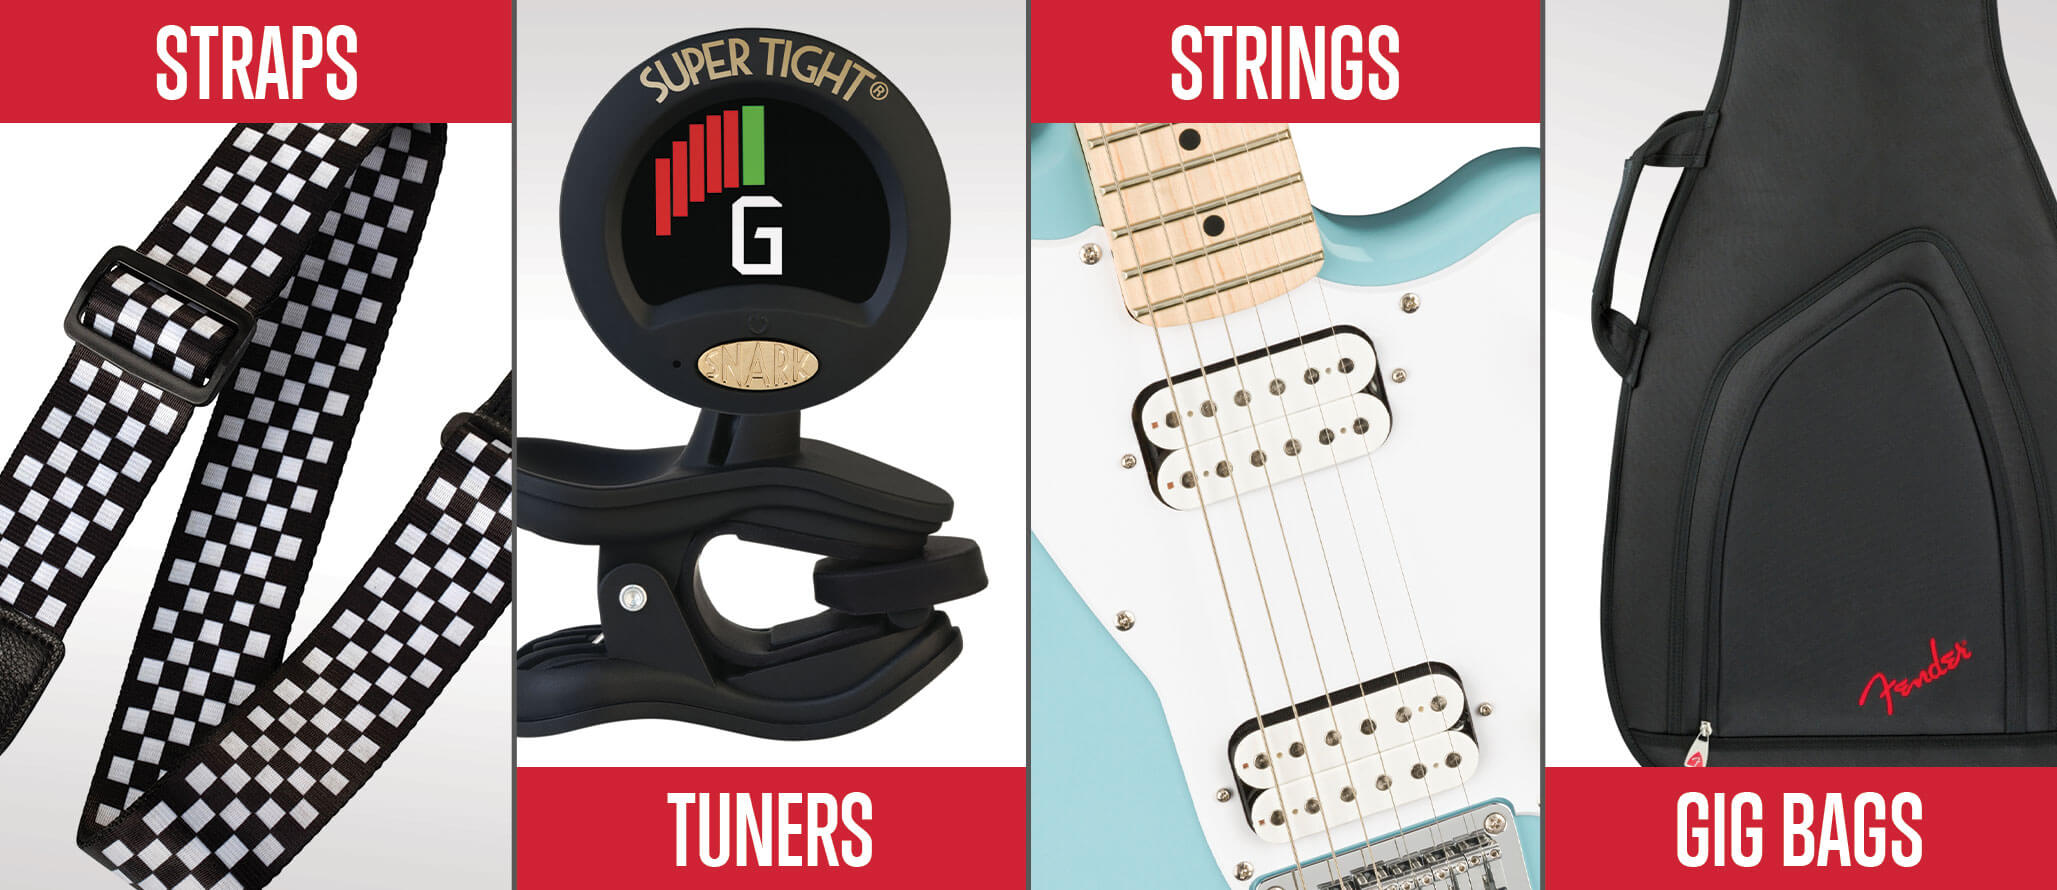 School of Rock sells guitar and bass guitar accessories